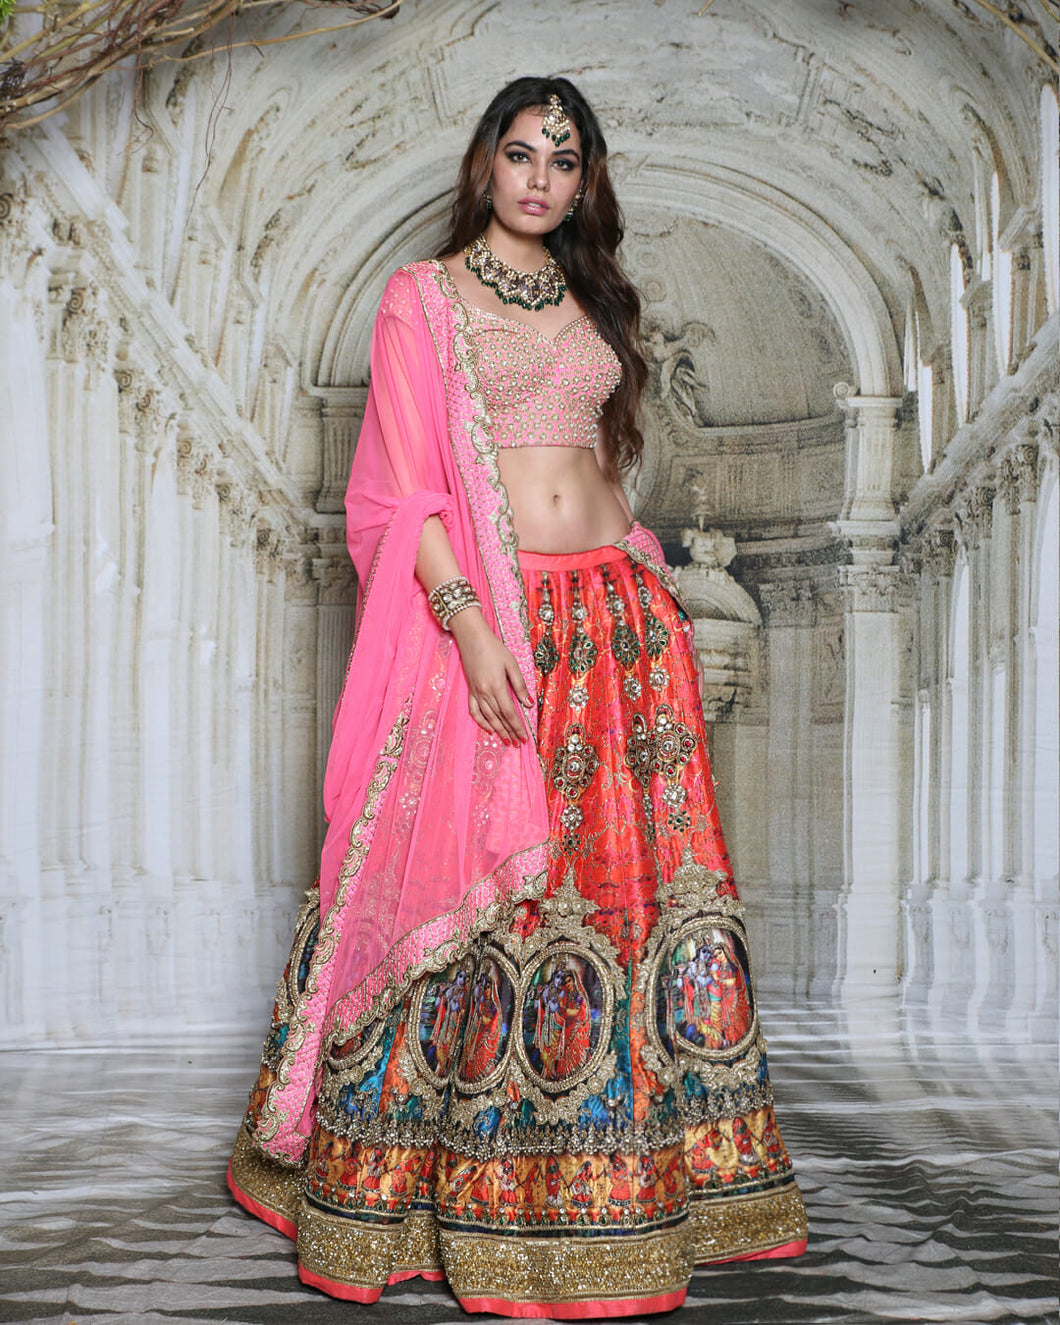 The Radha-Krishna Lehenga - Archana Kochhar India